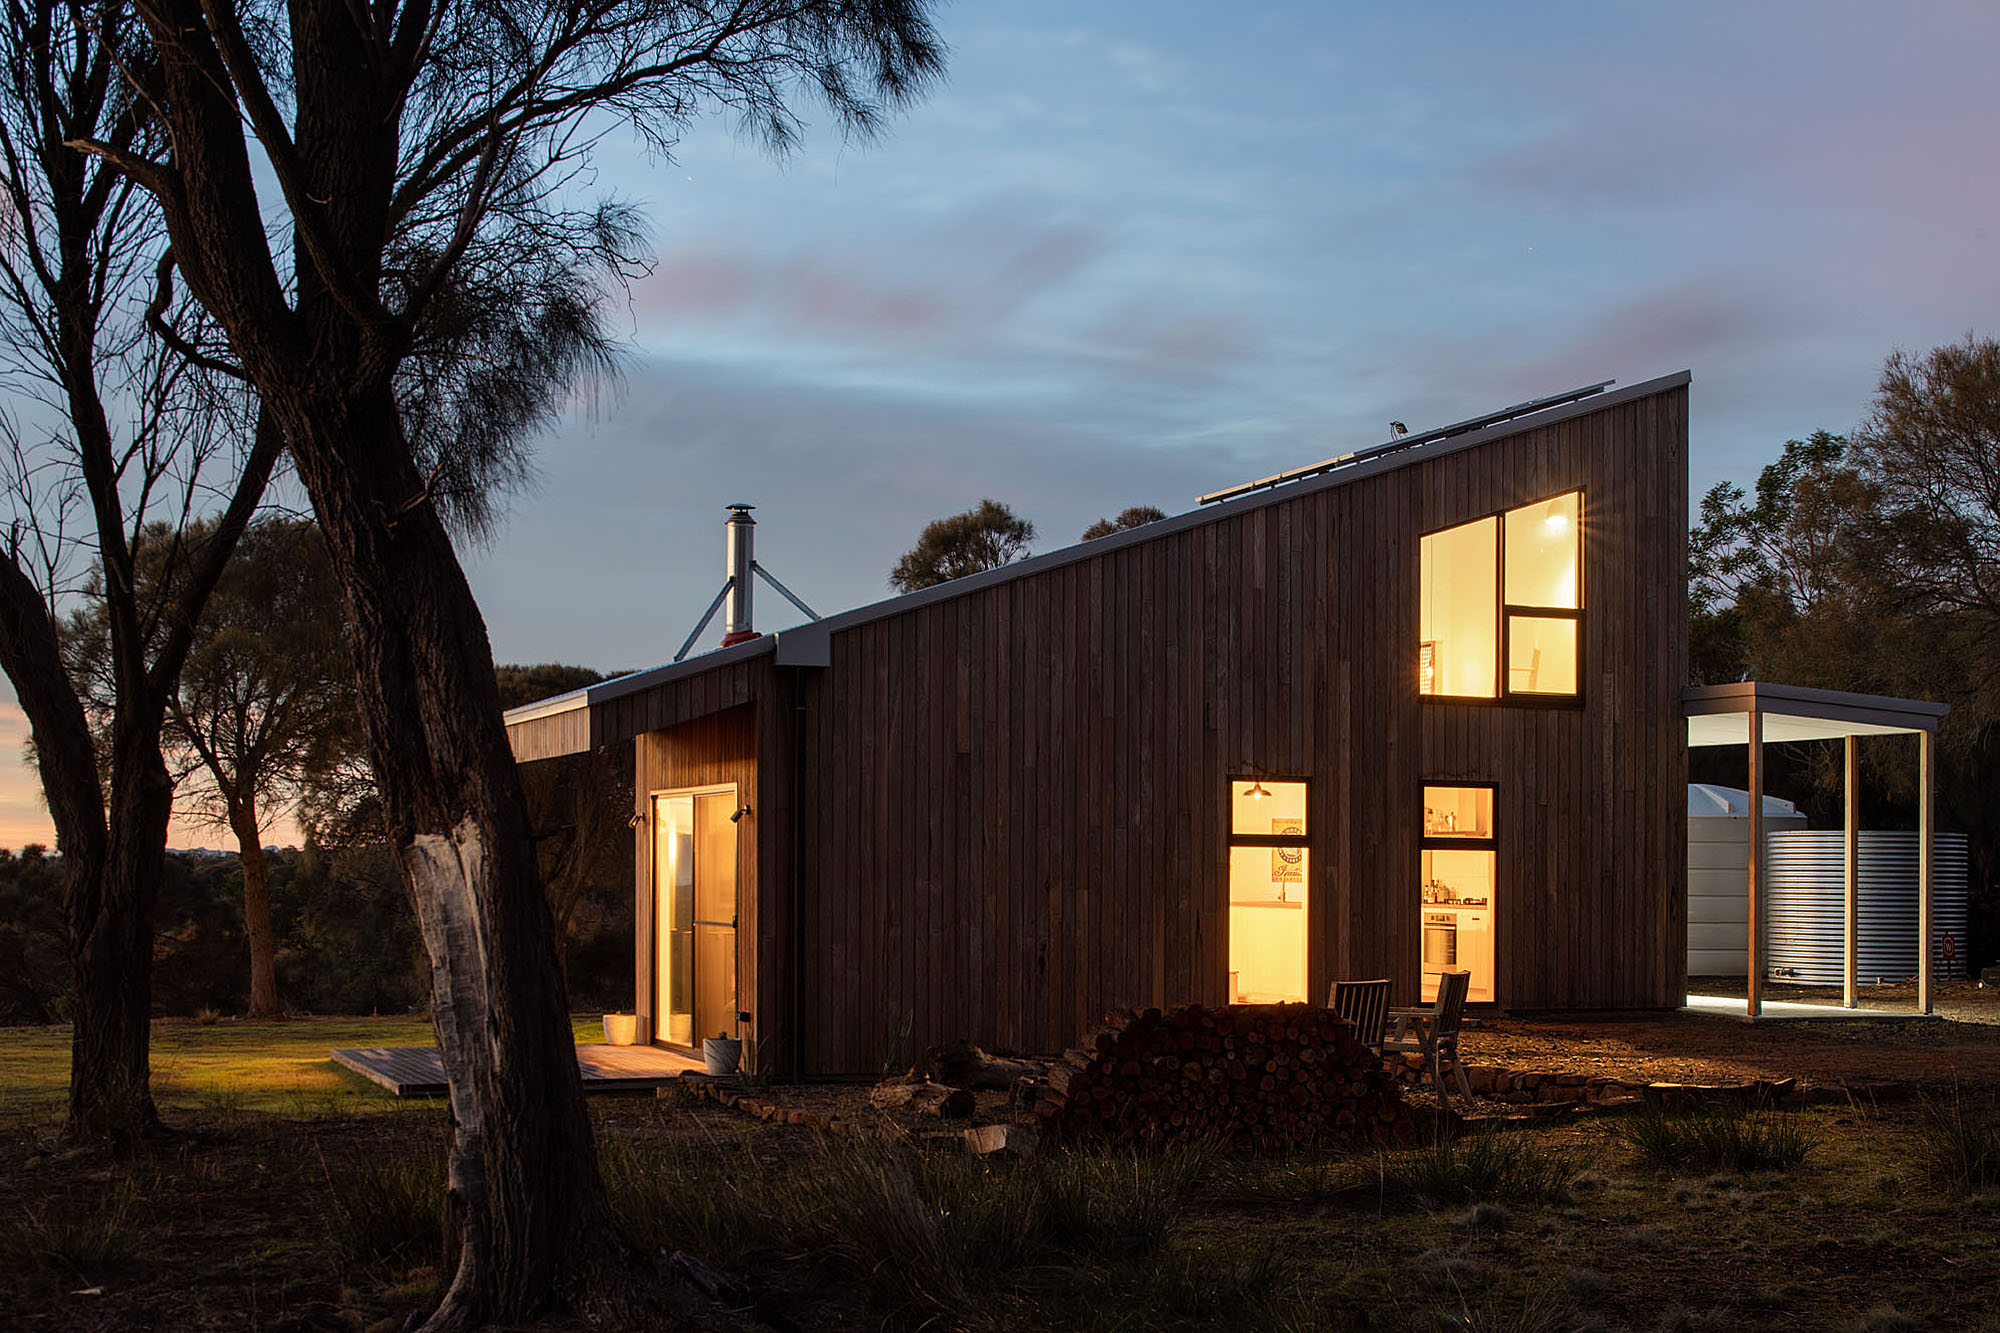 Night view of sustainable house with lights on